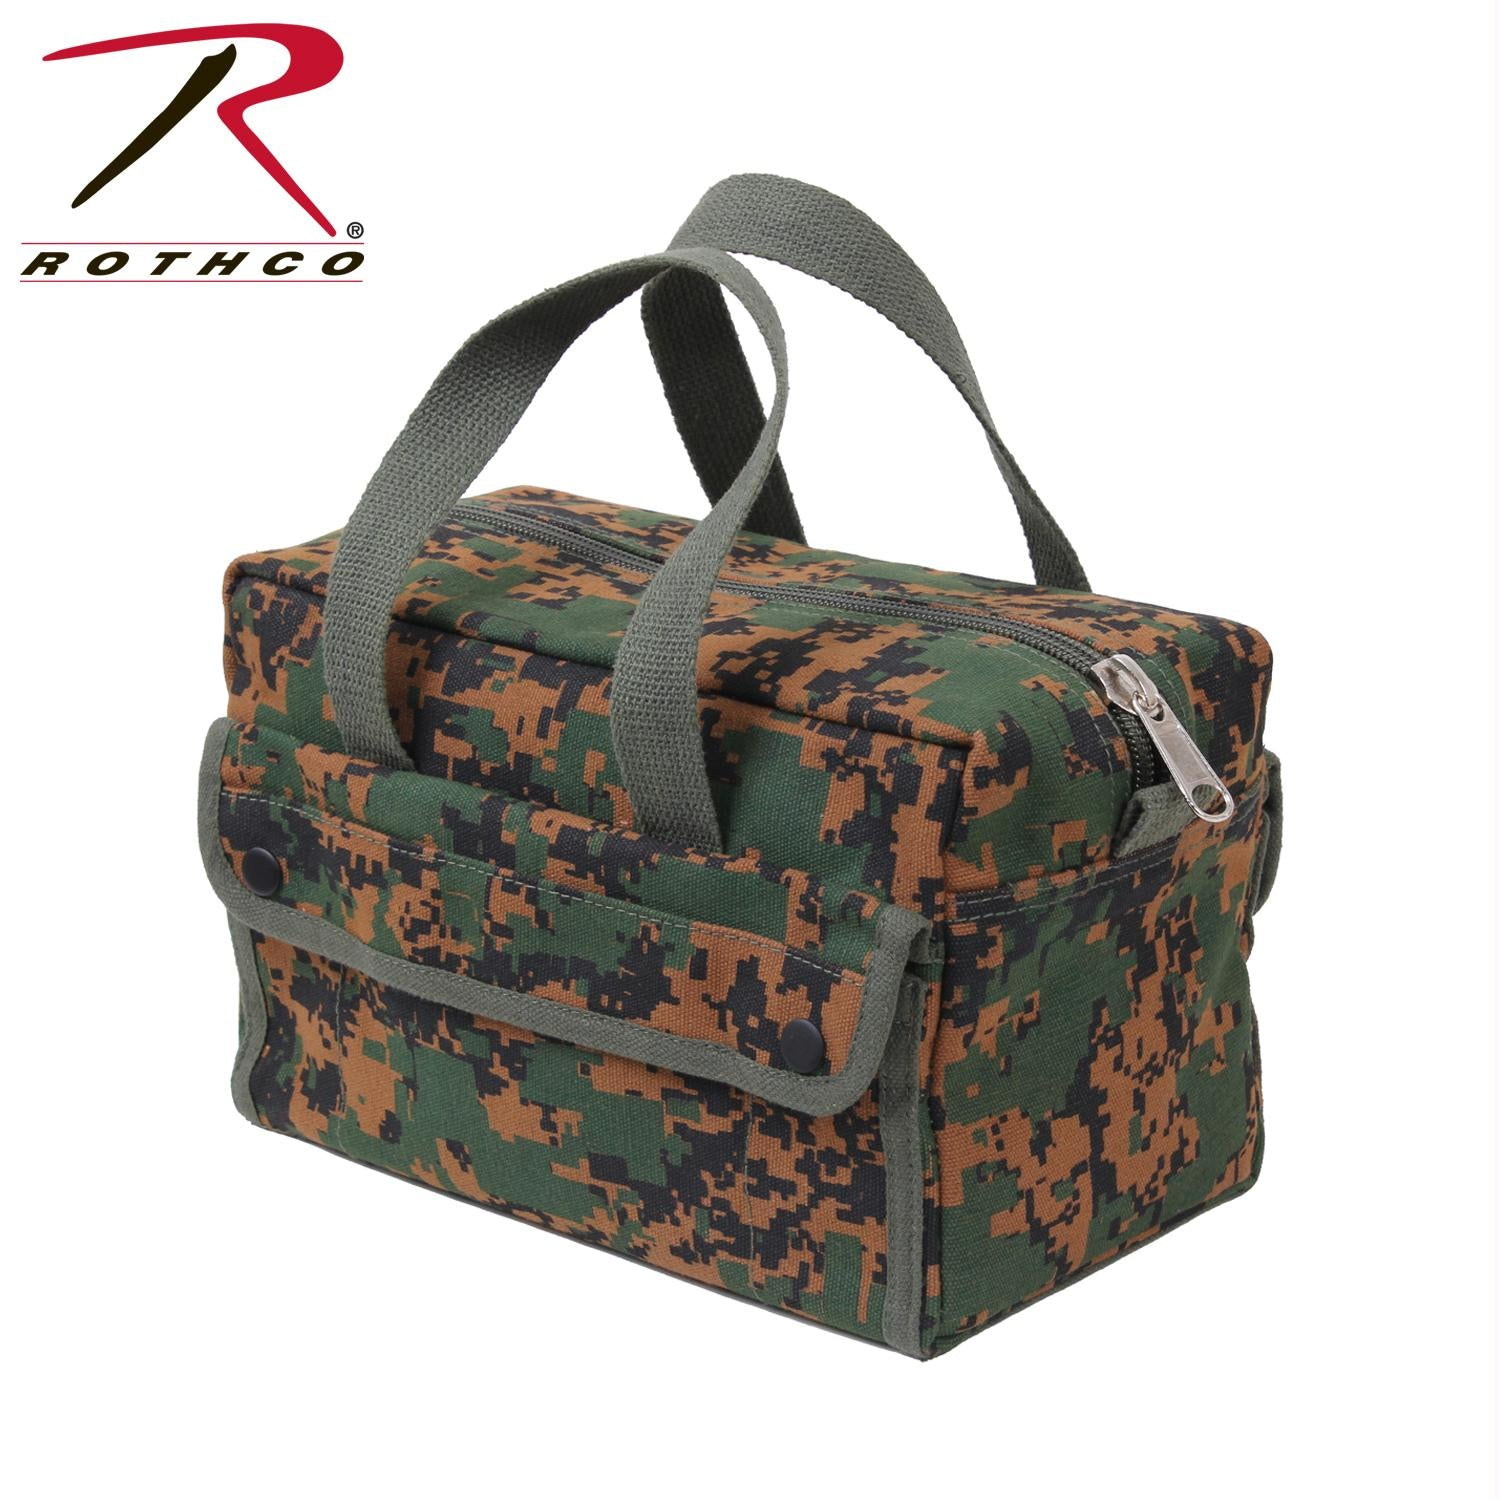 Rothco G.I. Type Mechanics Tool Bags - Woodland Digital Camo